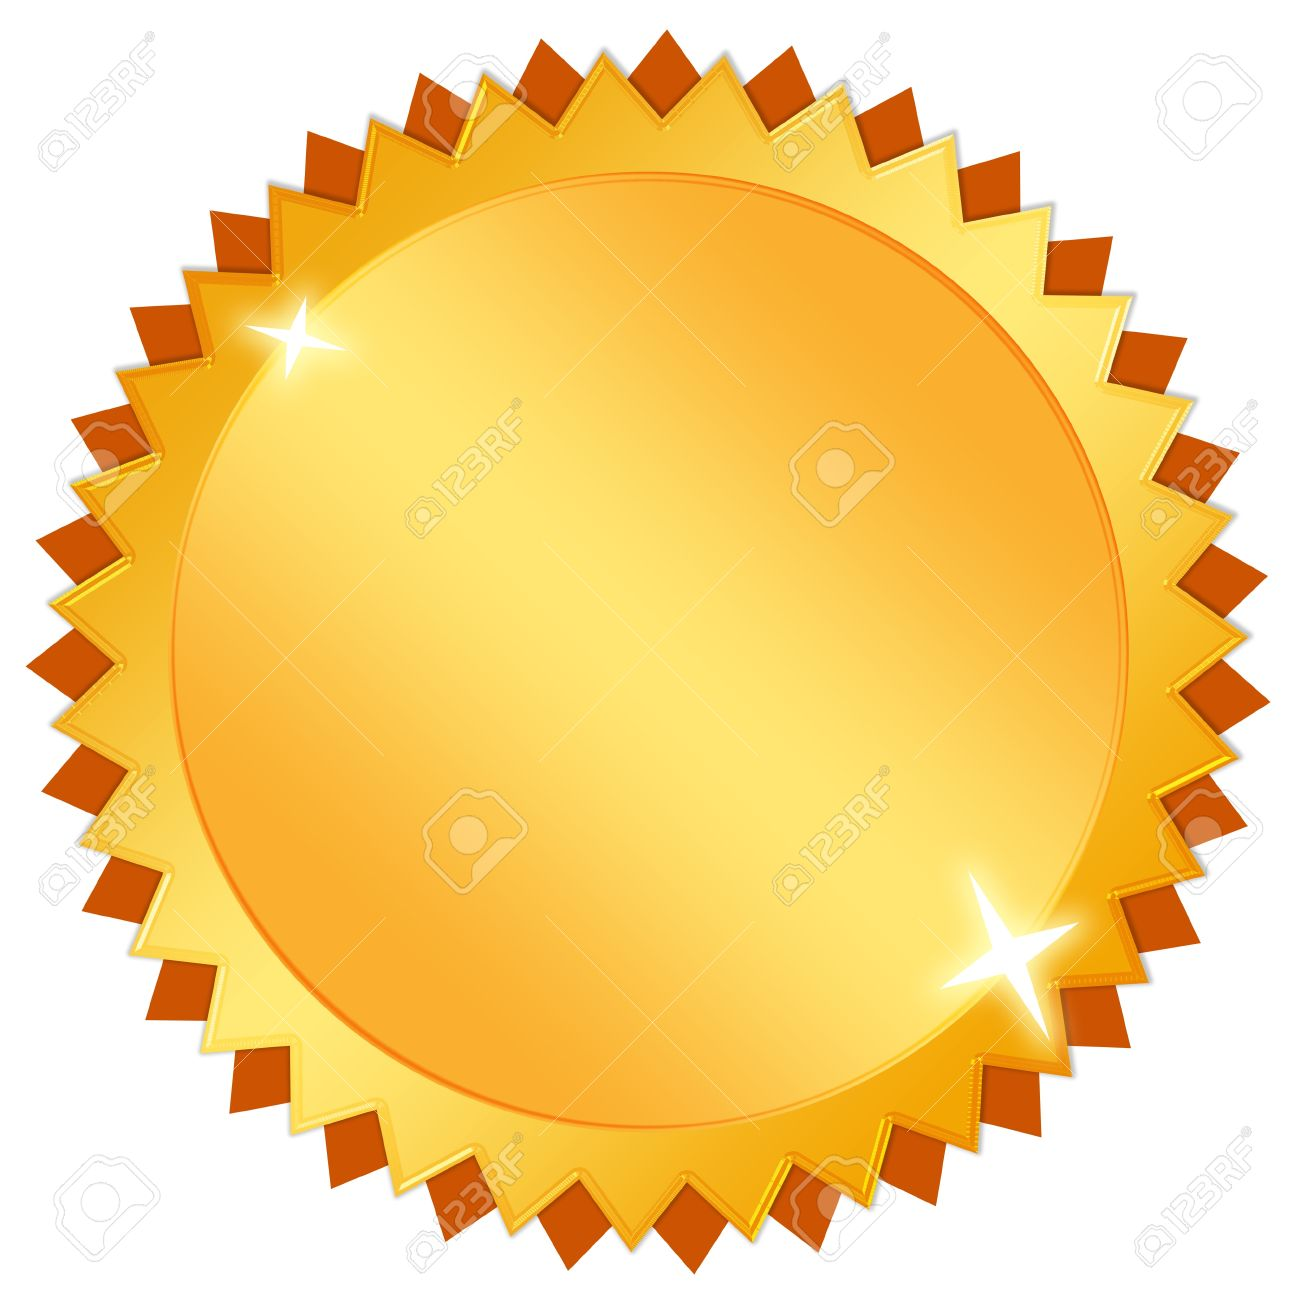 Blank Gold Certificate Icon Stock Photo, Picture And Royalty Free ...